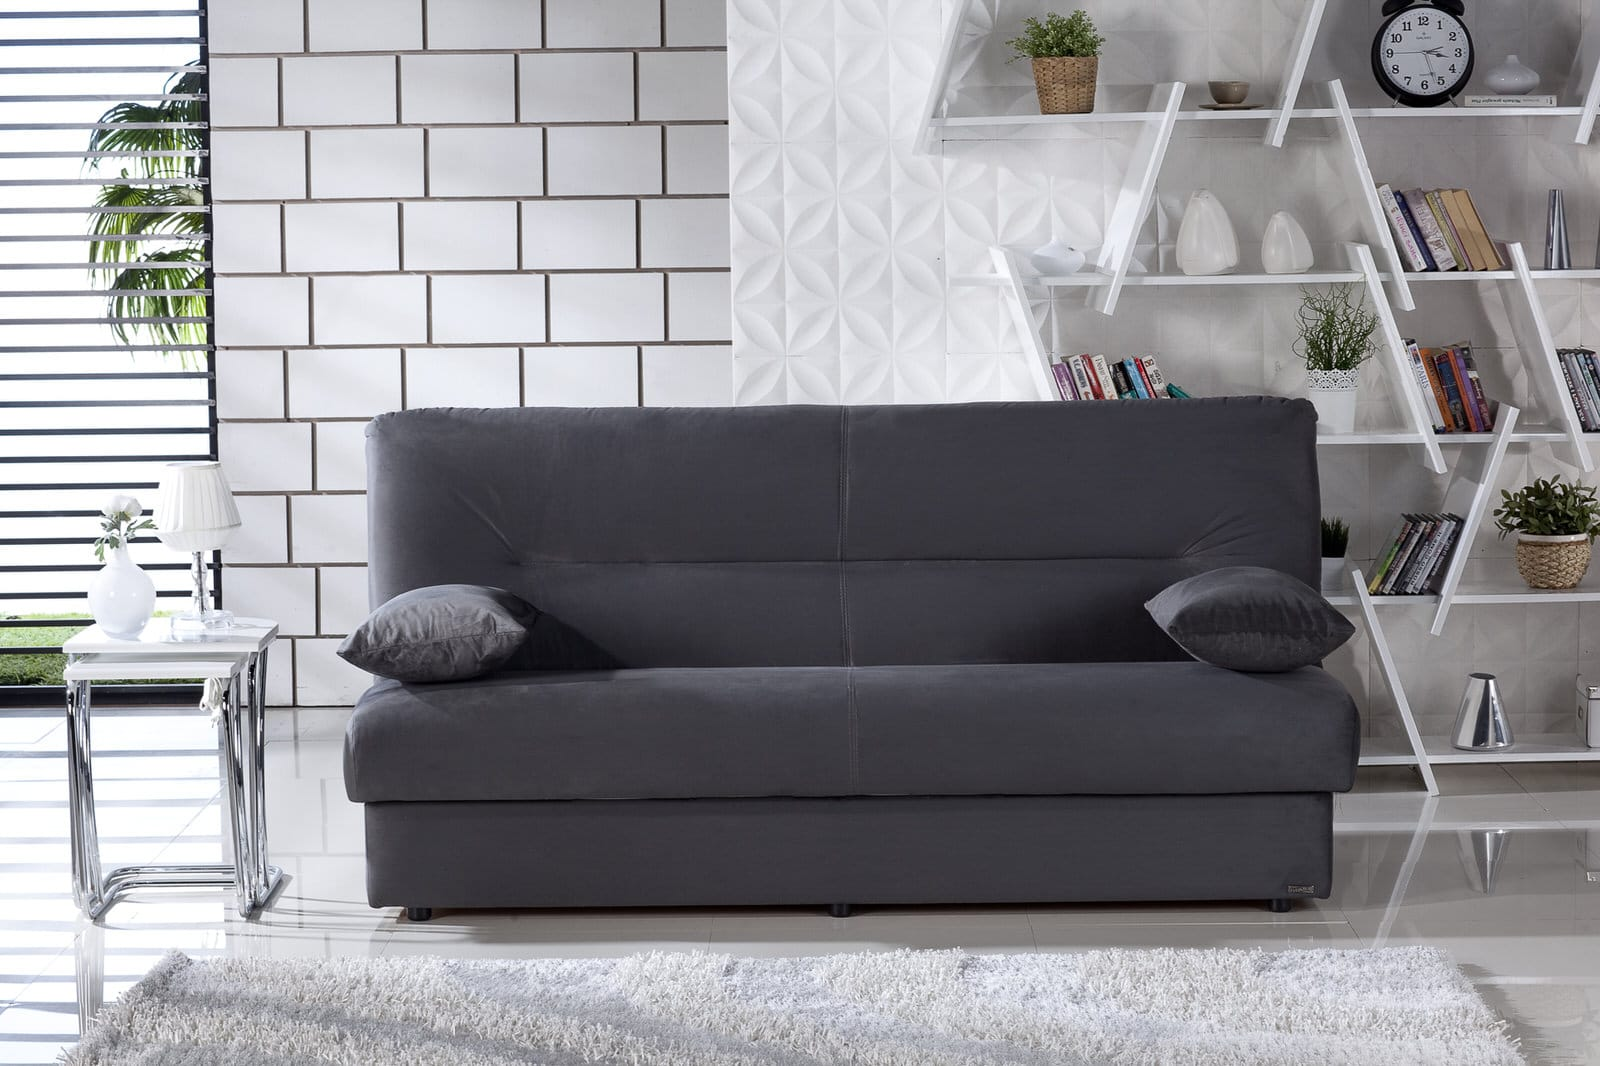 Istikbal Living Room Sets Regata Rainbow Dark Gray Convertible Sofa Bed By Sunset